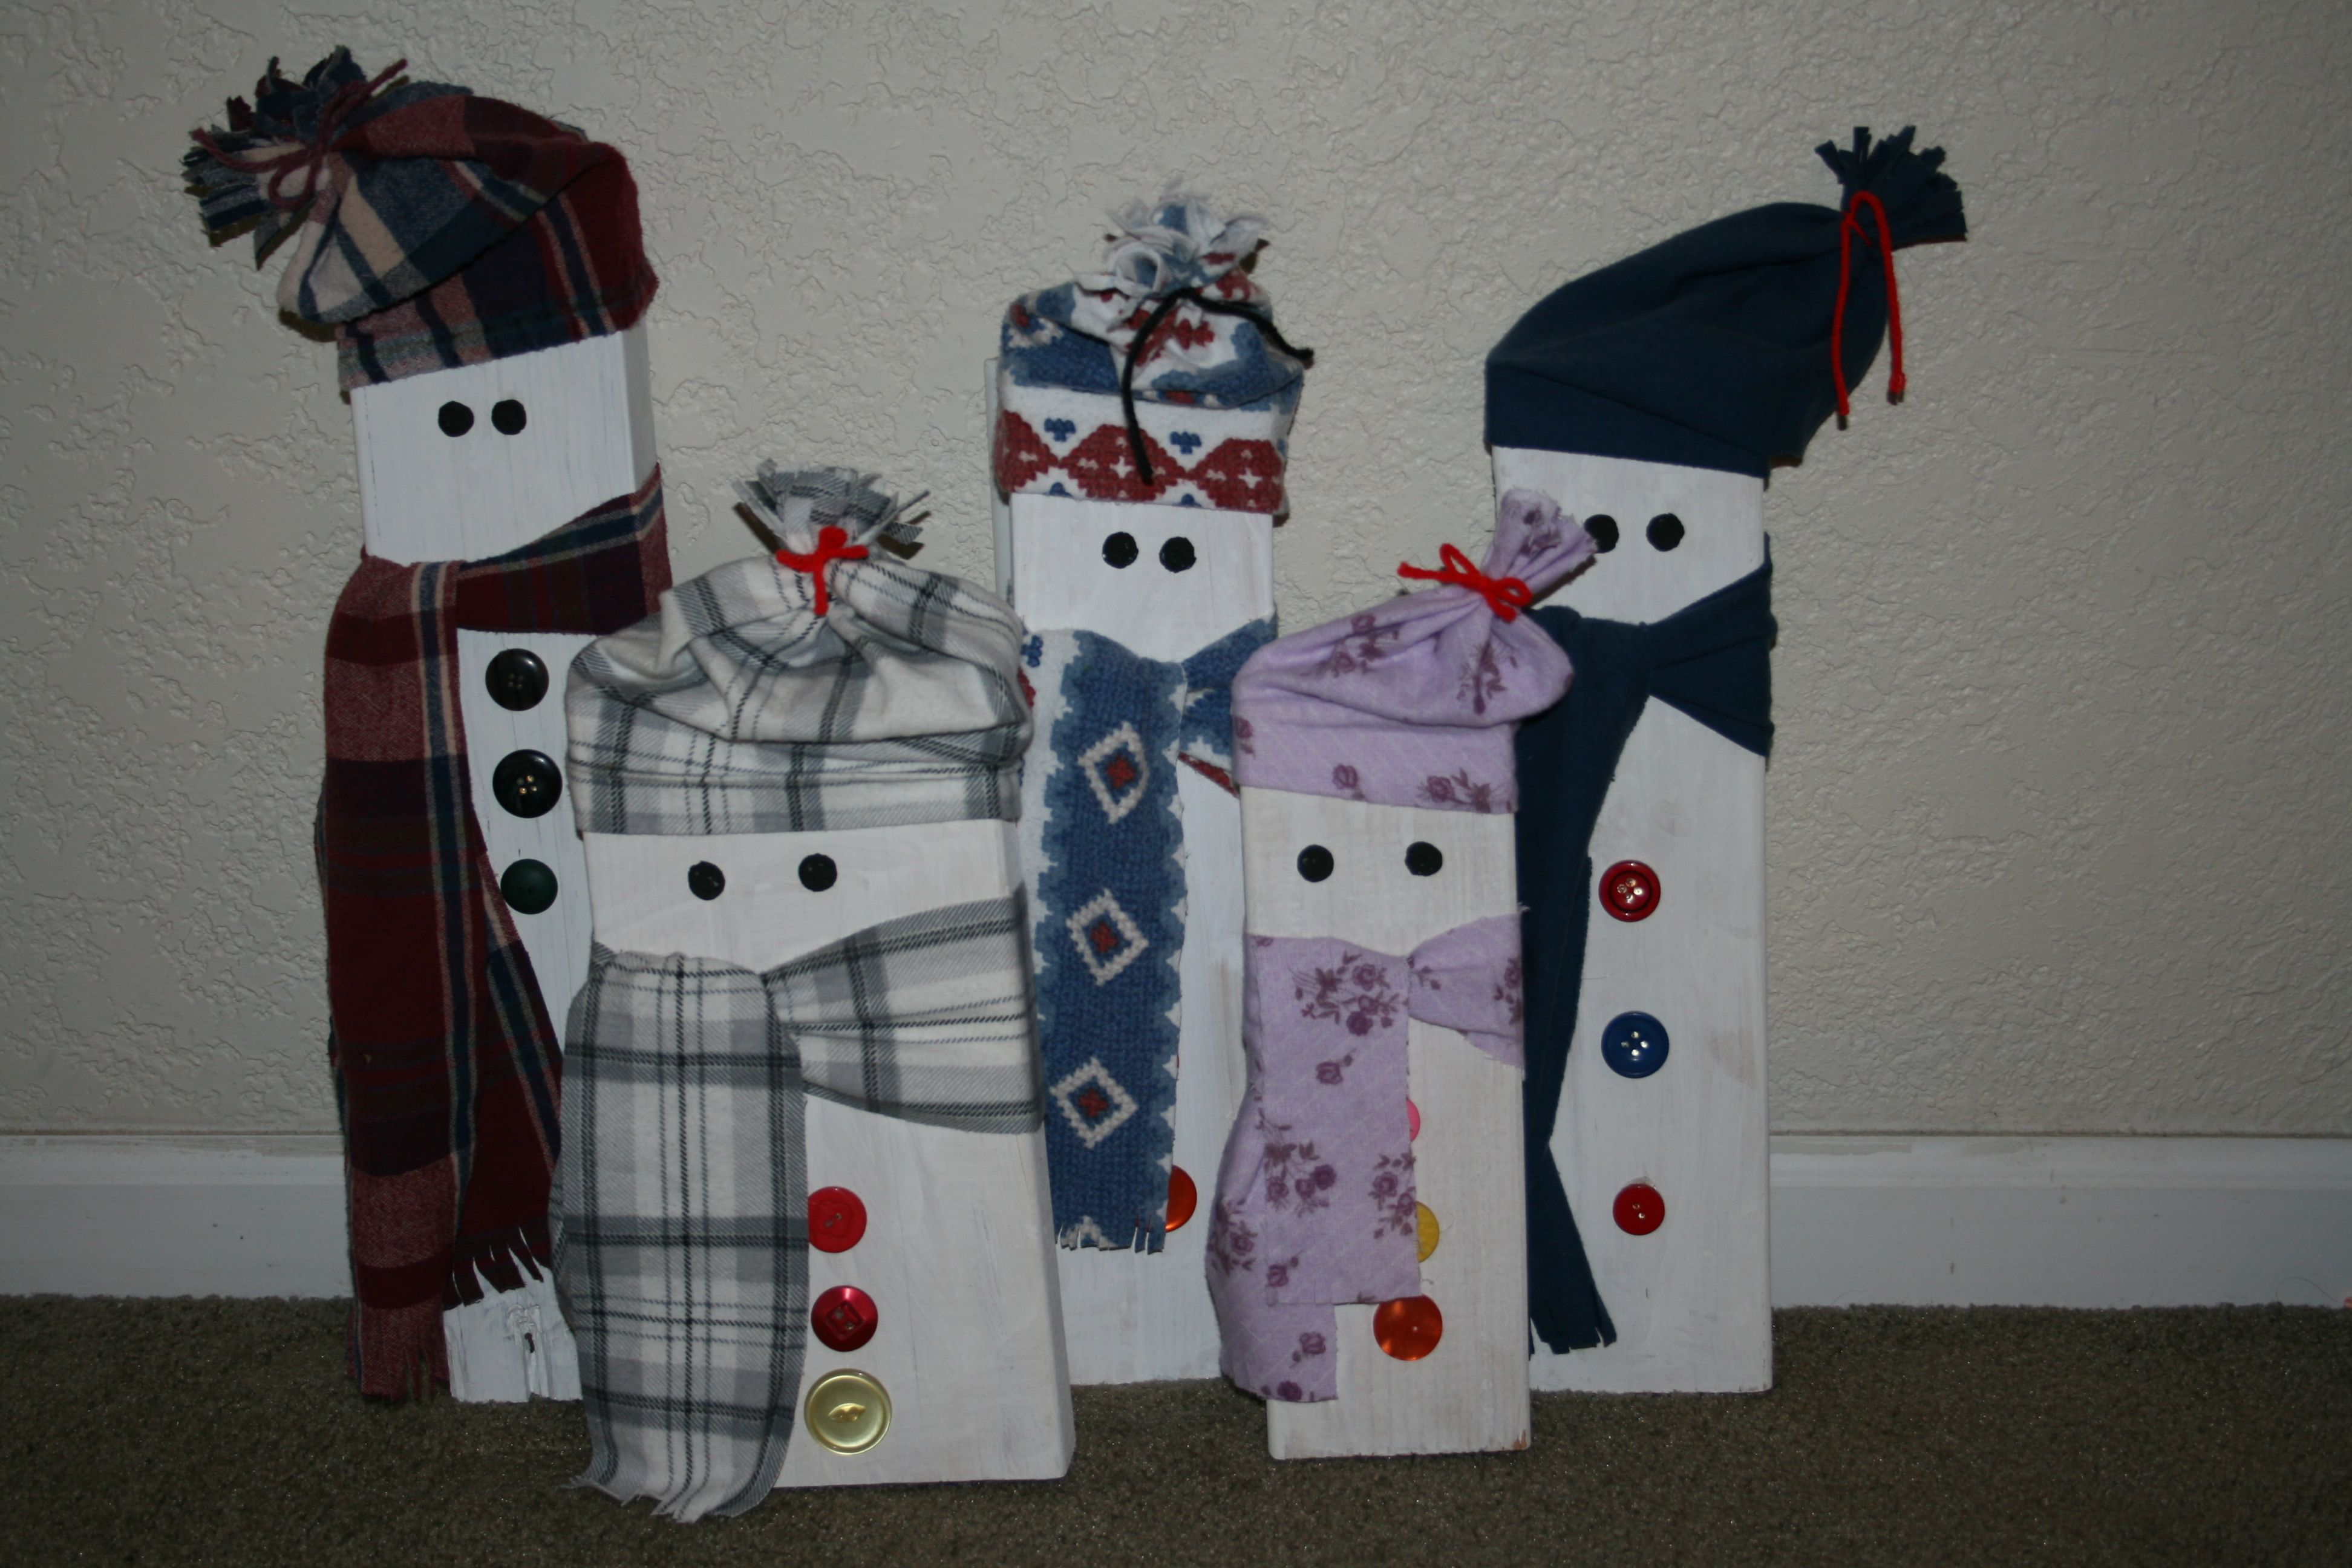 No Christmas decor is complete without snowmen. These DIY 2x4 Christmas decor ideas are so easy to make and will look so festive.